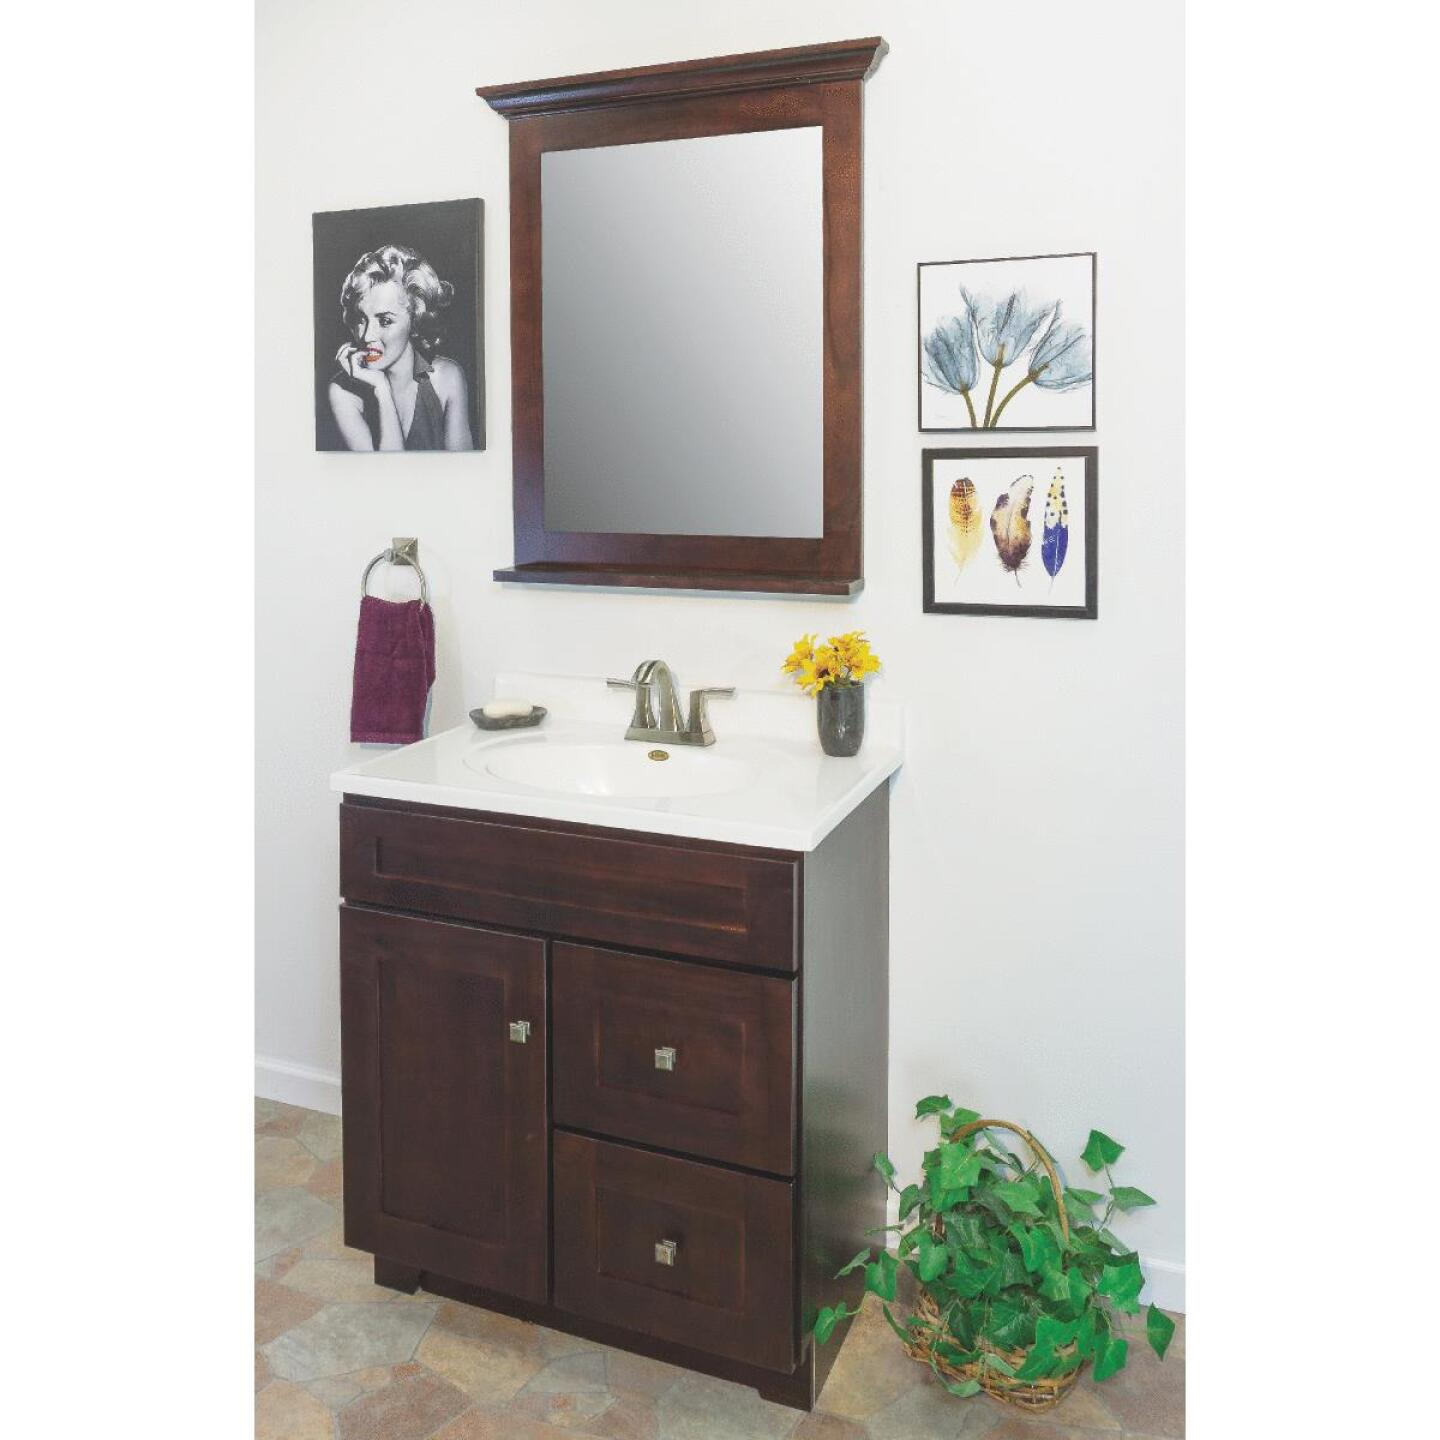 CraftMark CherryVale Shaker Cherry 30 In. W x 34 In. H x 21 In. D Vanity Base, 1 Door/2 Drawer Image 5